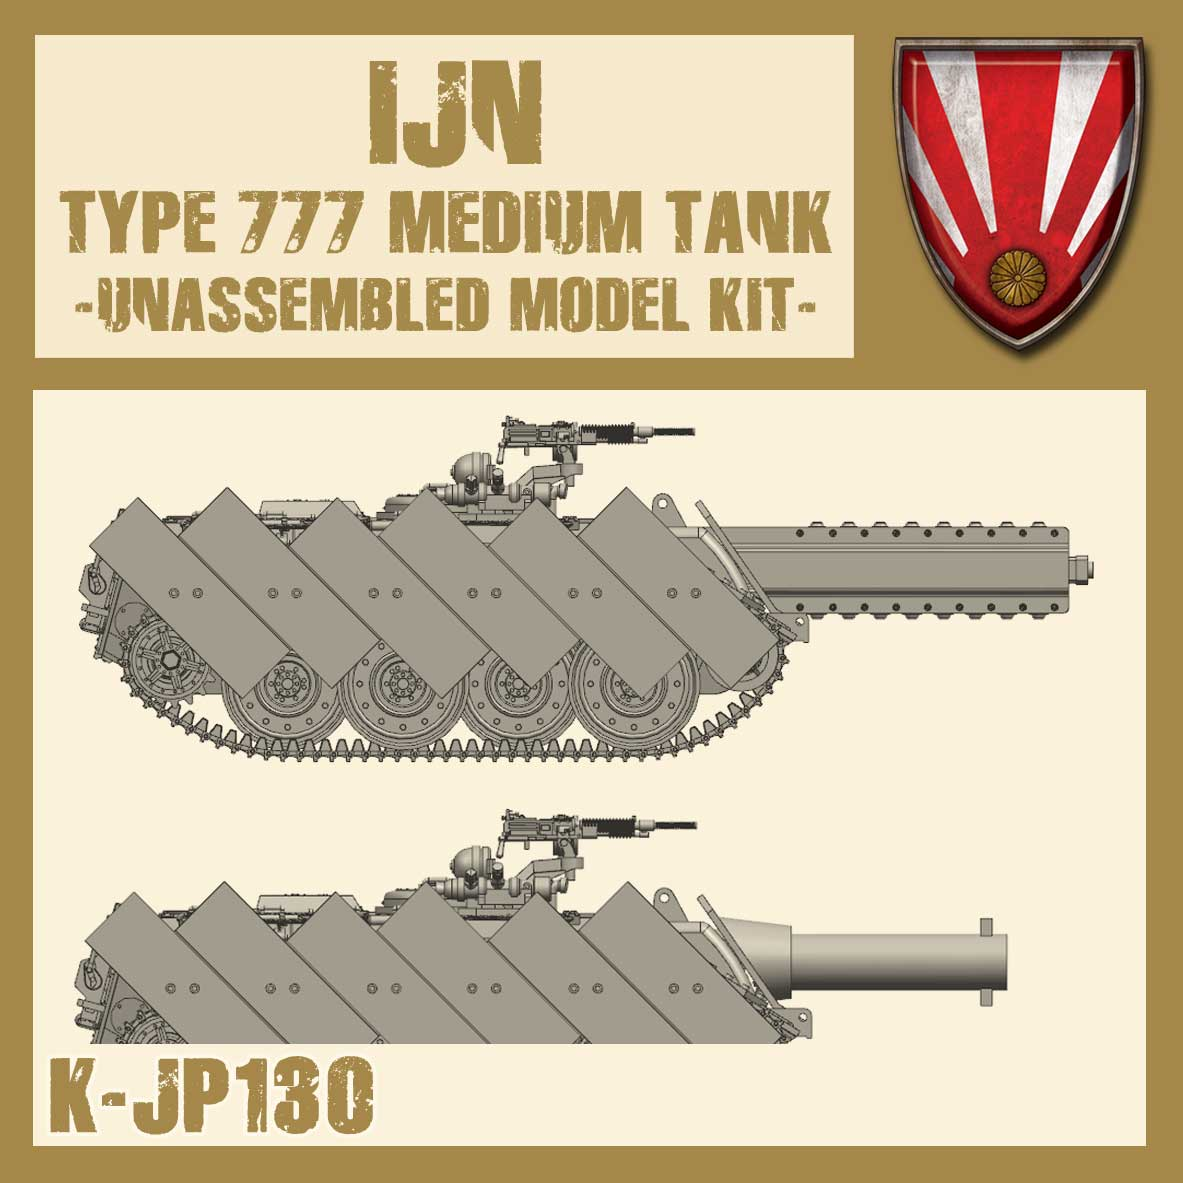 TYPE 777 MEDIUM TANK Kit